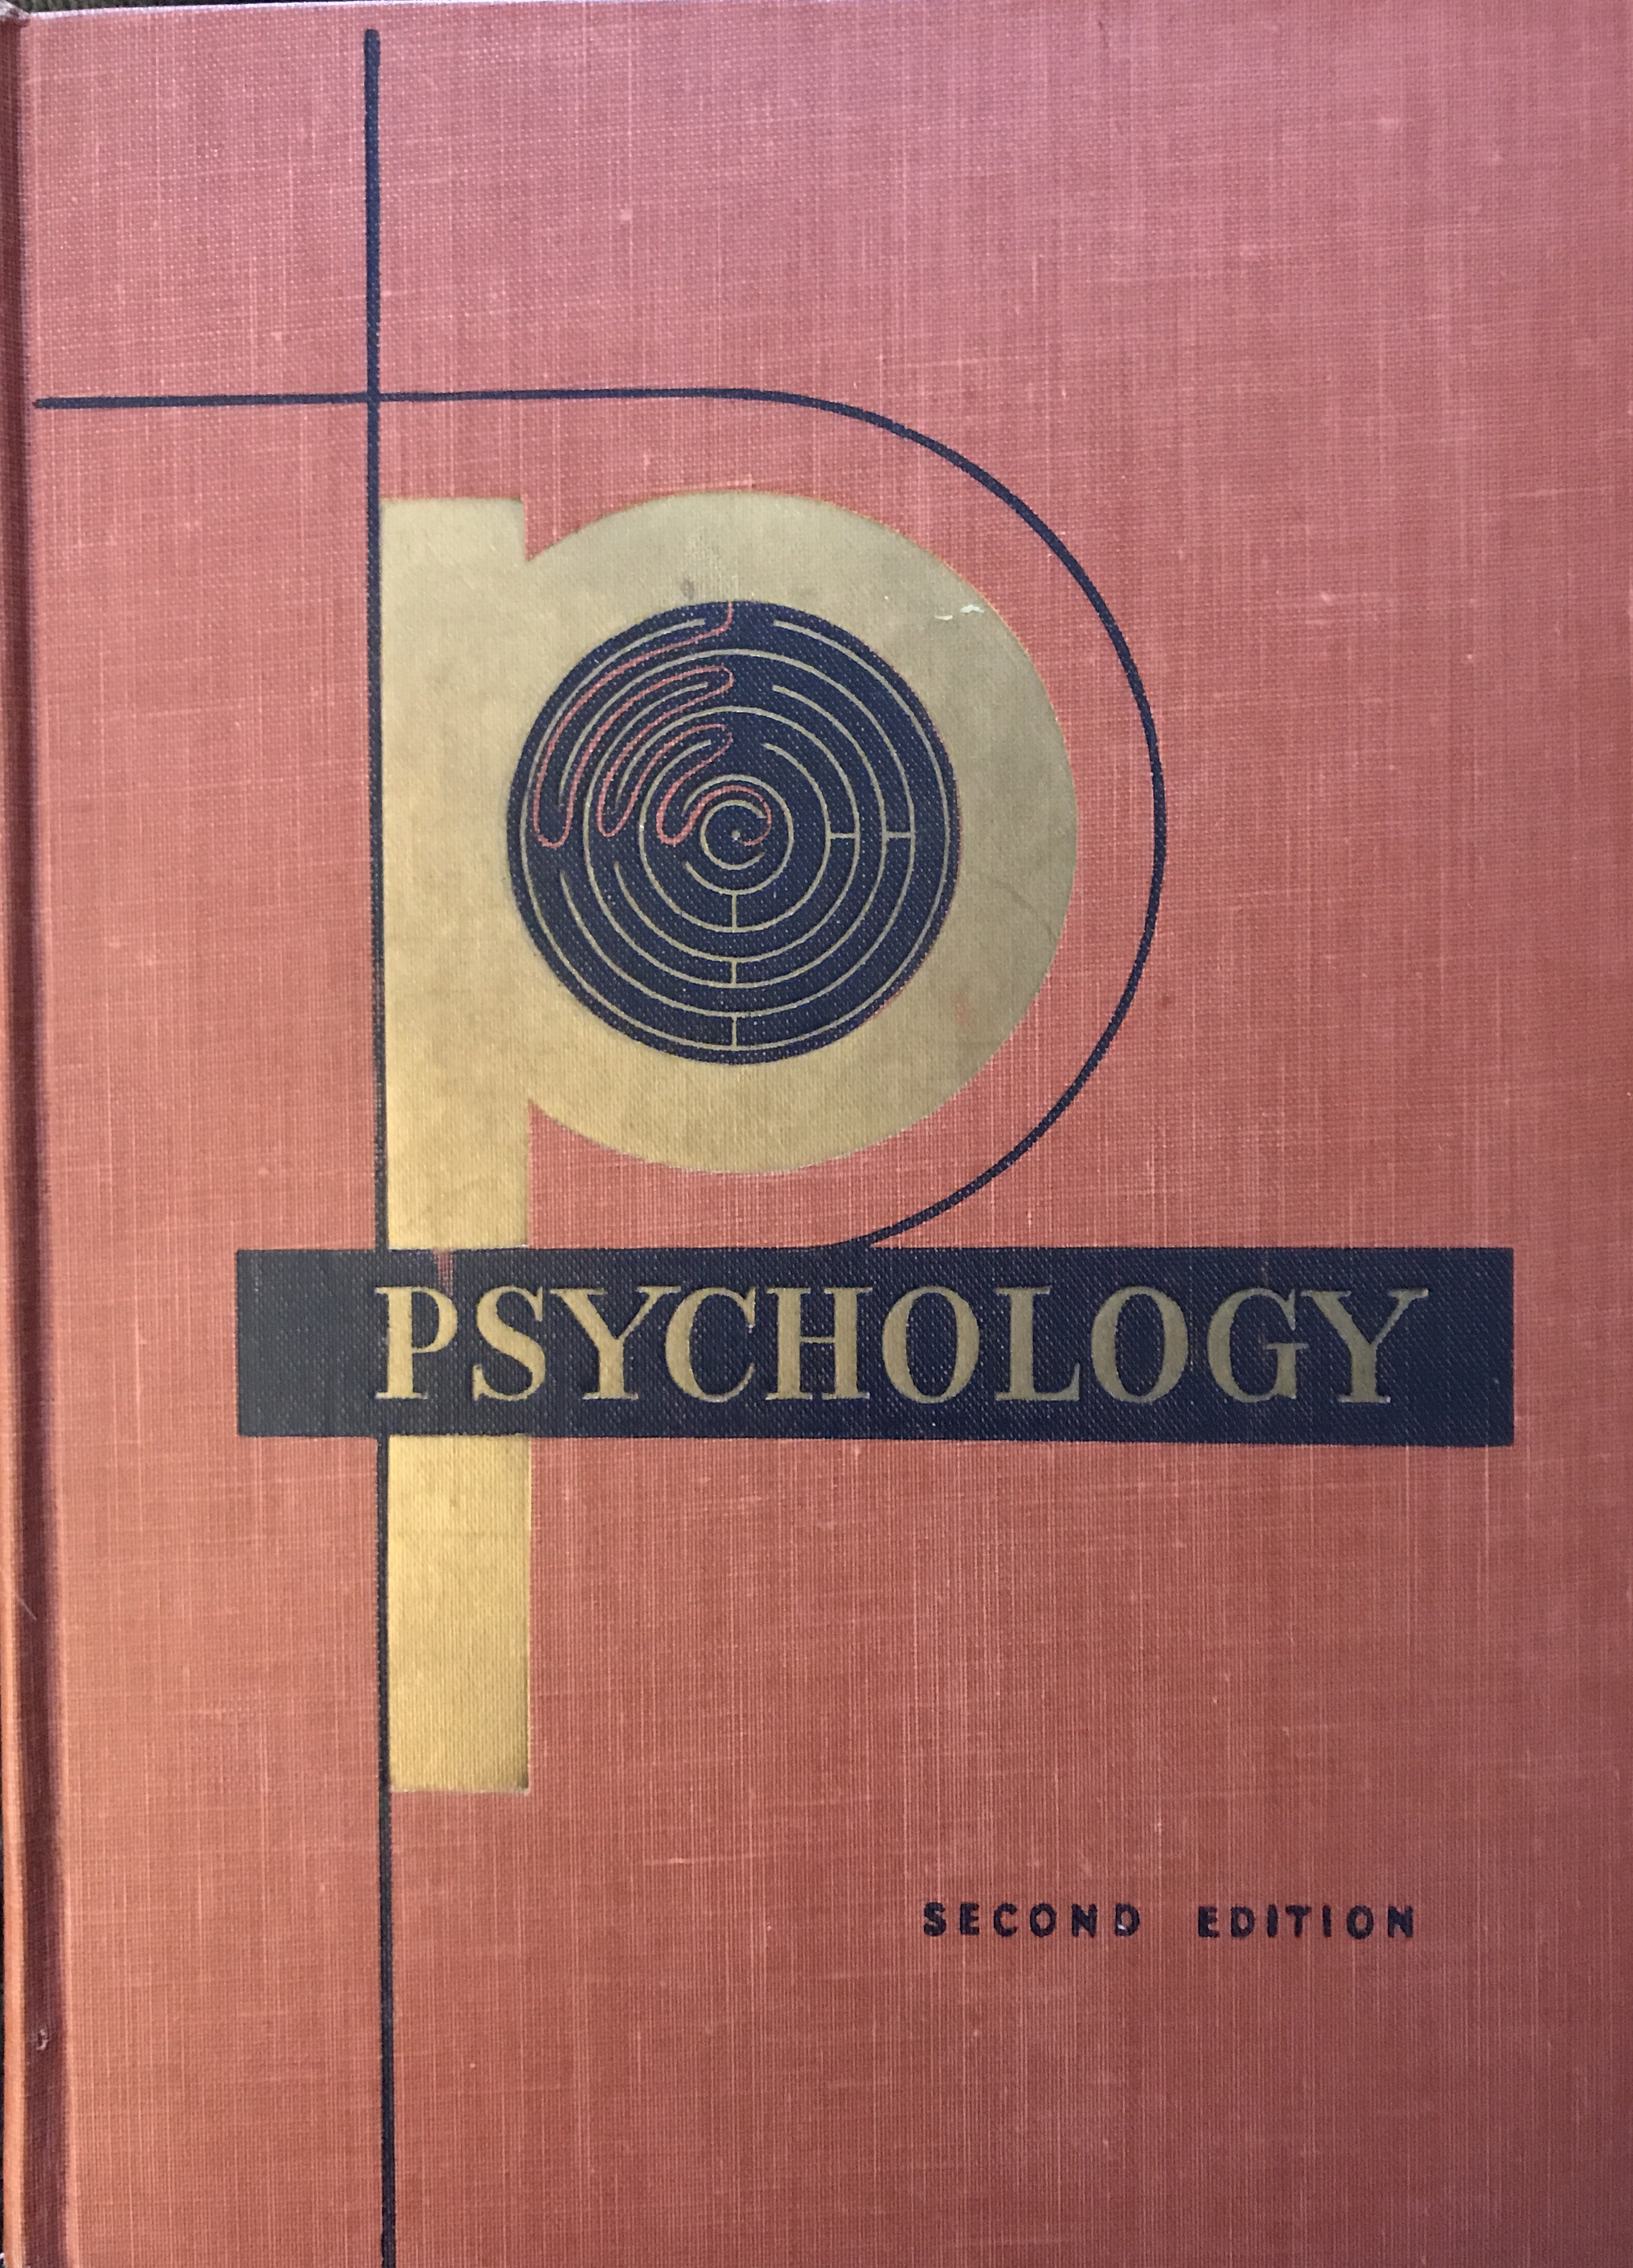 The open psych book a good man is hard to find my search for the open psych book a good man is hard to find my search for ronald h tammen jr fandeluxe Choice Image